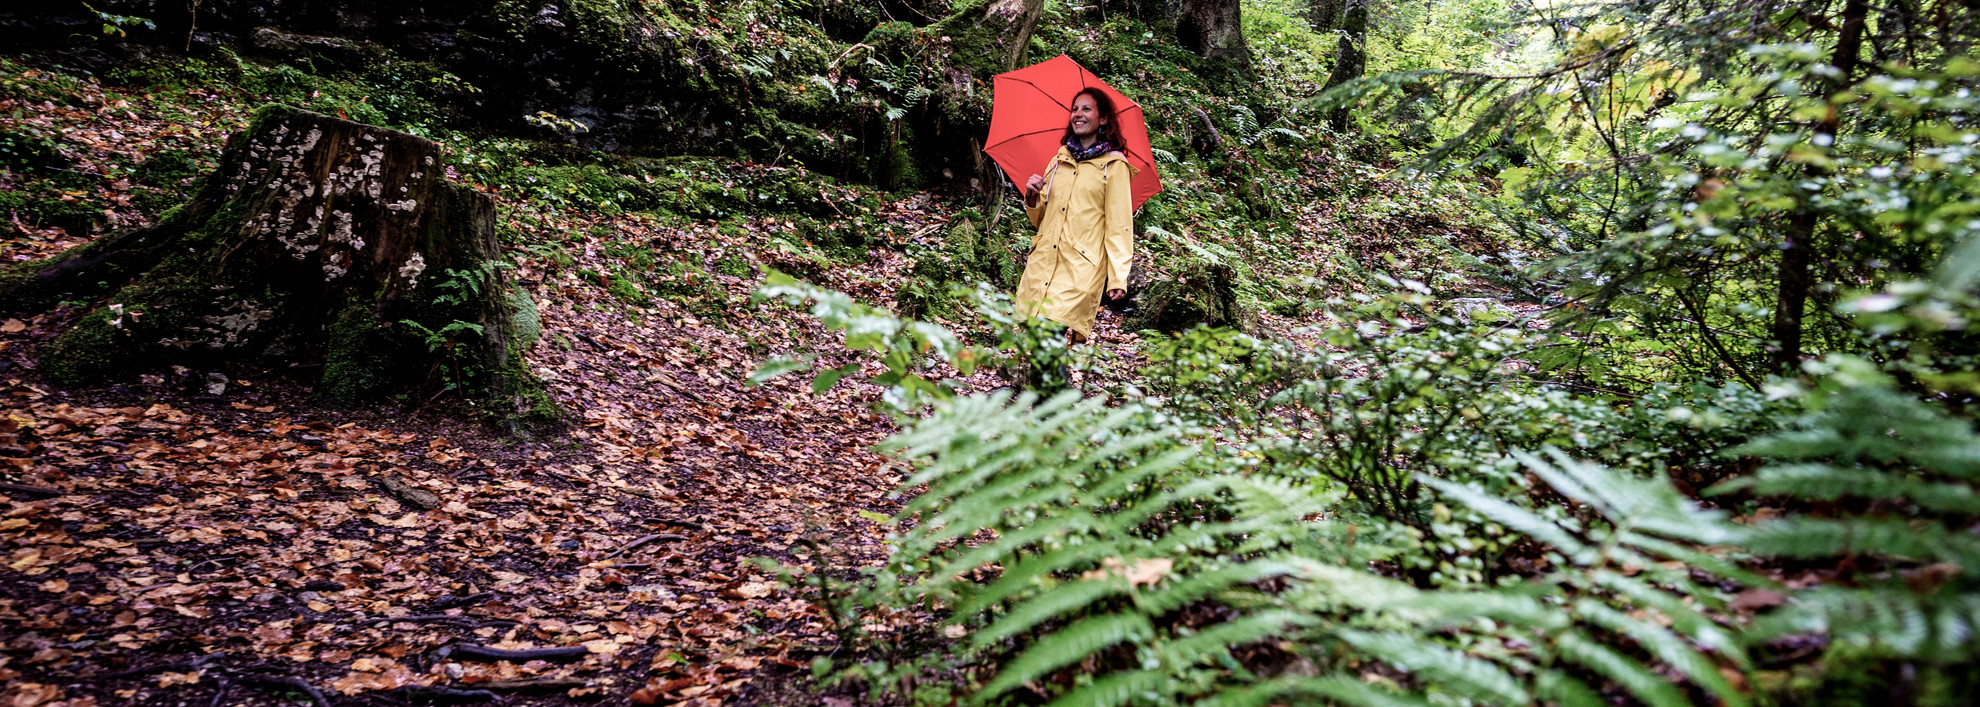 Hiking on rainy days | © Kleinwalsertal Tourismus eGen | Photographer: Dominik Berchtold